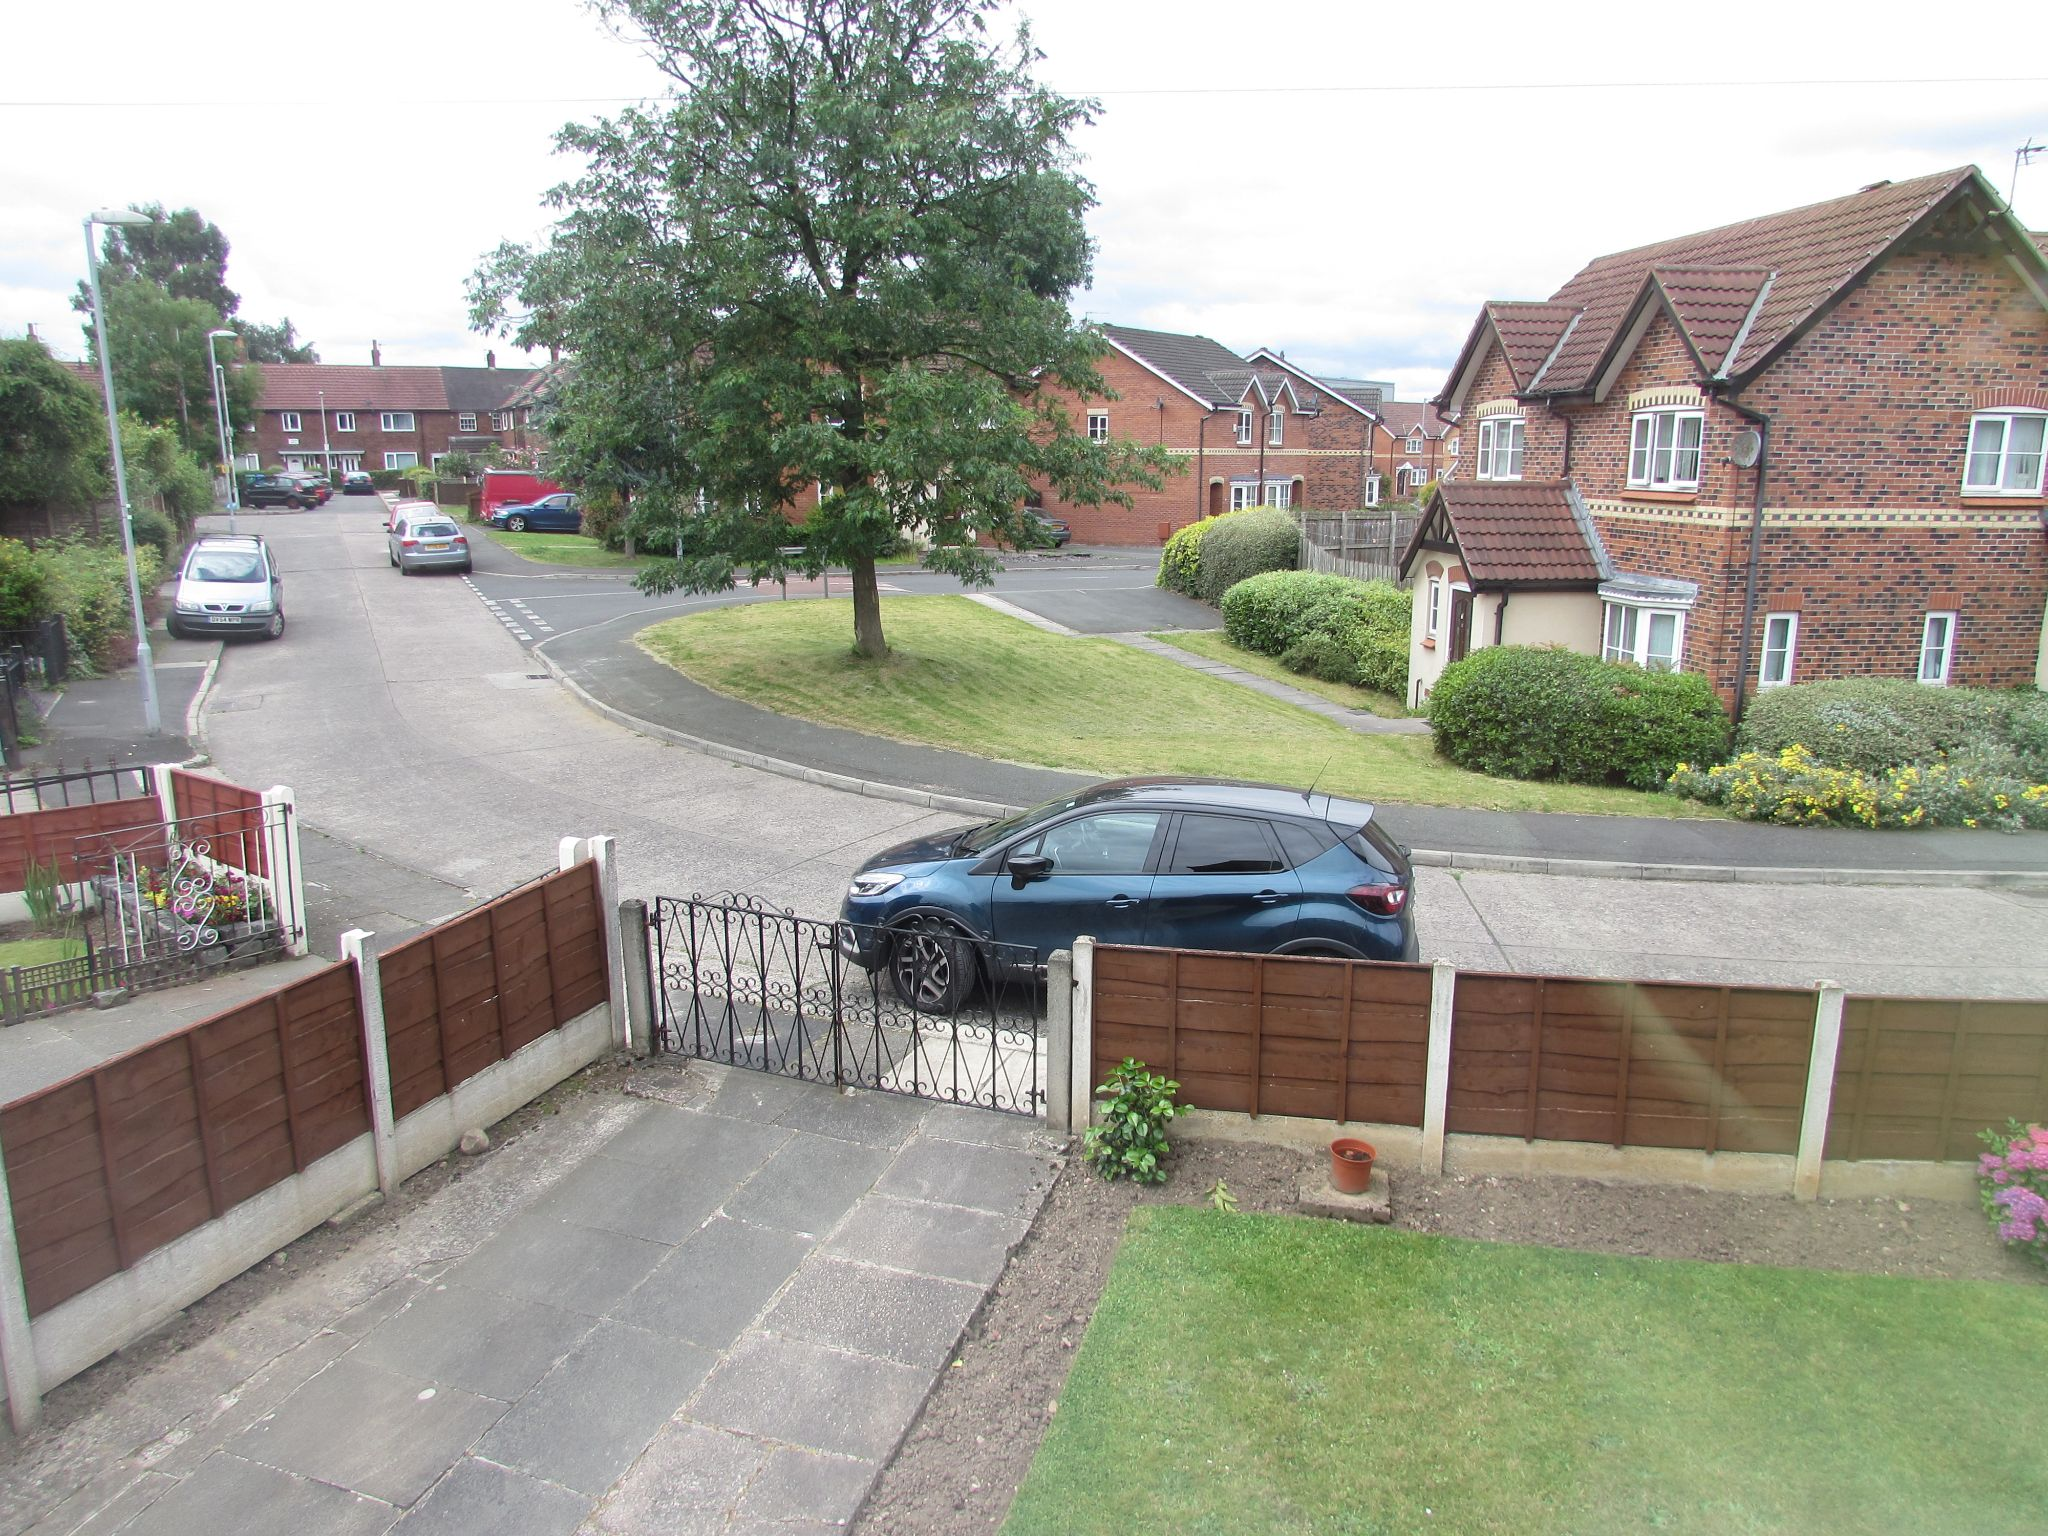 3 Bedroom End Terraced House For Sale - Front Out Look